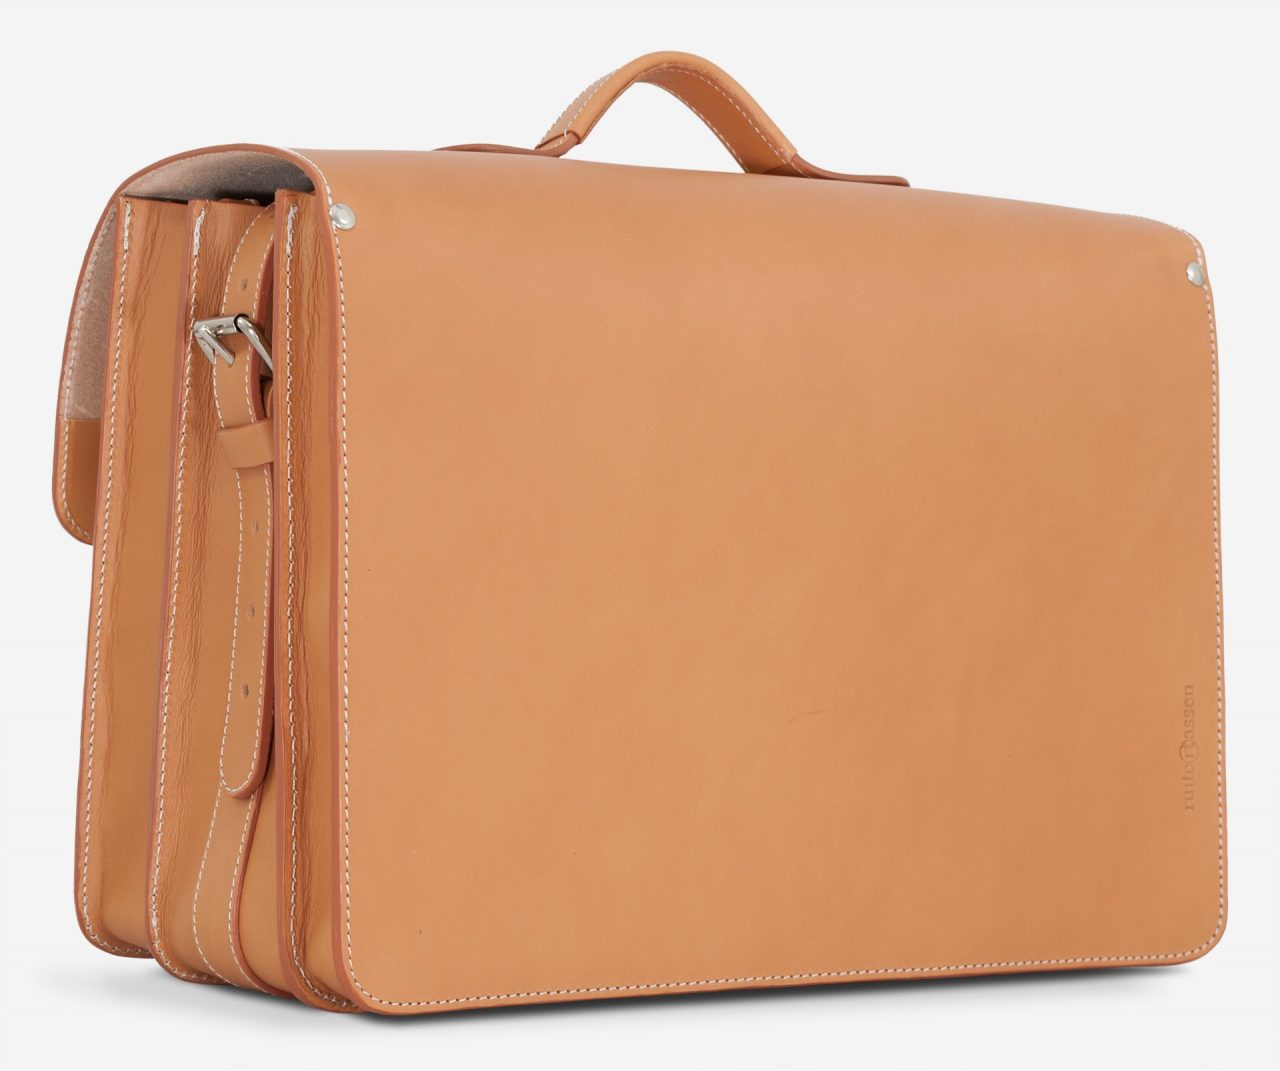 Back view of the Ruitertassen tan leather satchel briefcase.